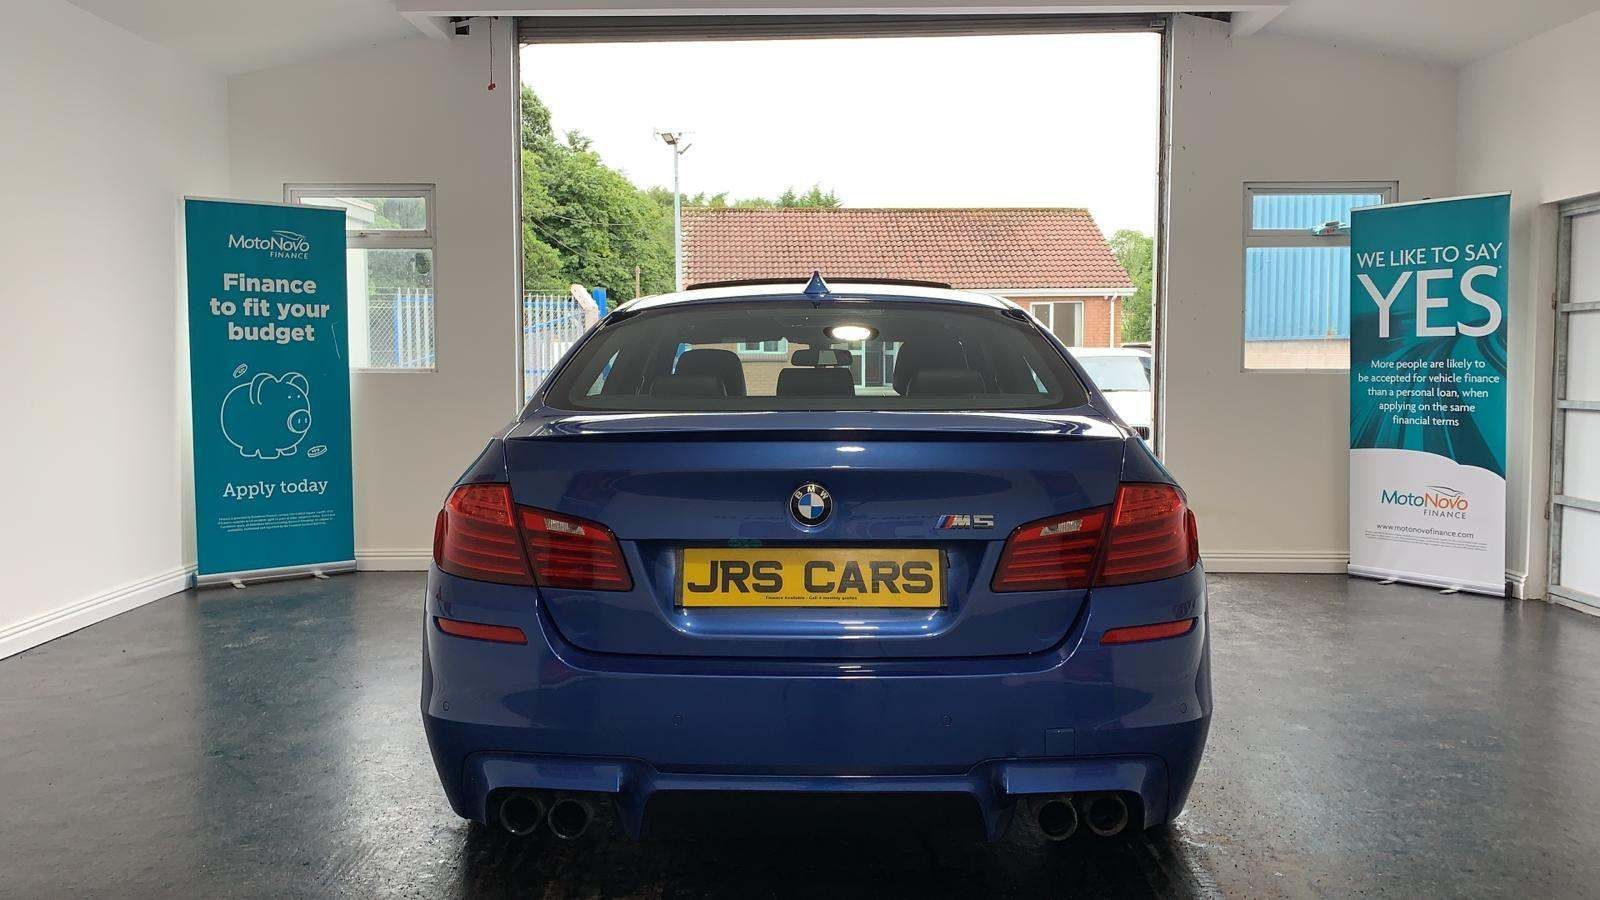 2014 BMW M5 4.4 M DCT Petrol Automatic **Monte Carlo Blue-Sun Roof** – J R S Commercials And Cars Dungannon full